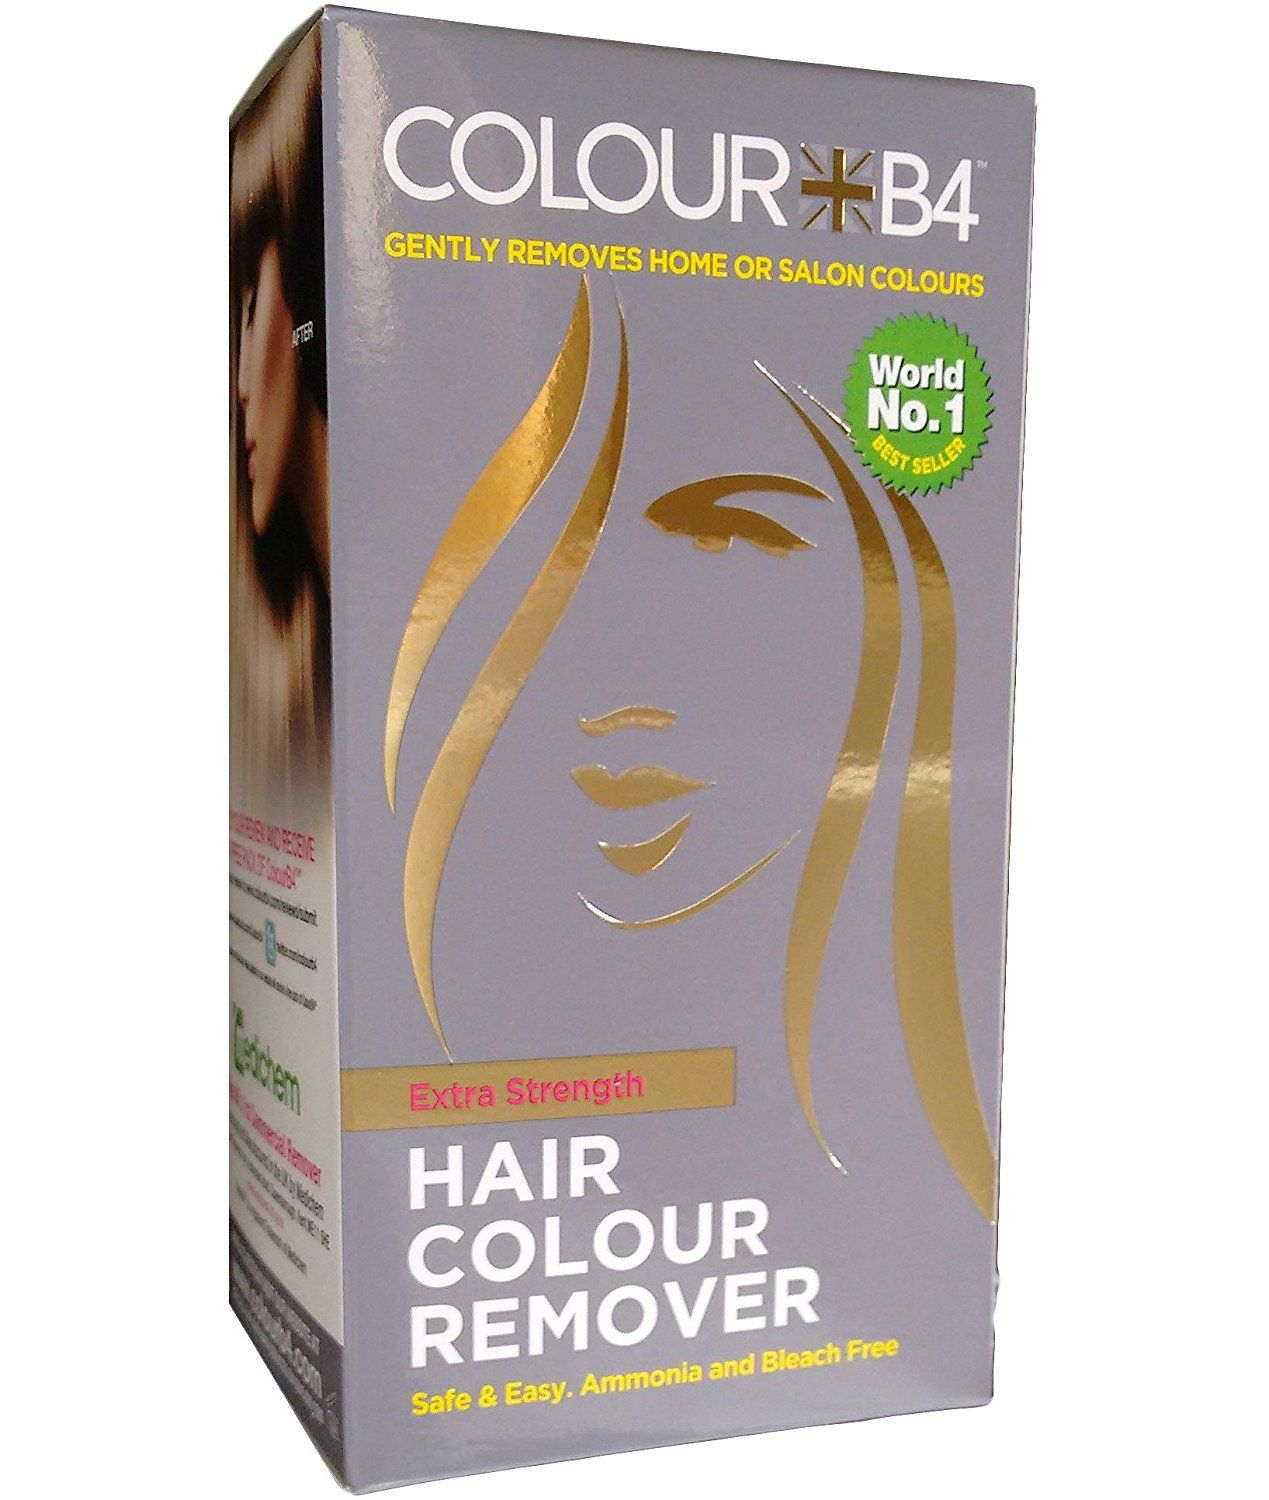 Colour B4 Hair Colour Remover Extra Strength More Details Can Be